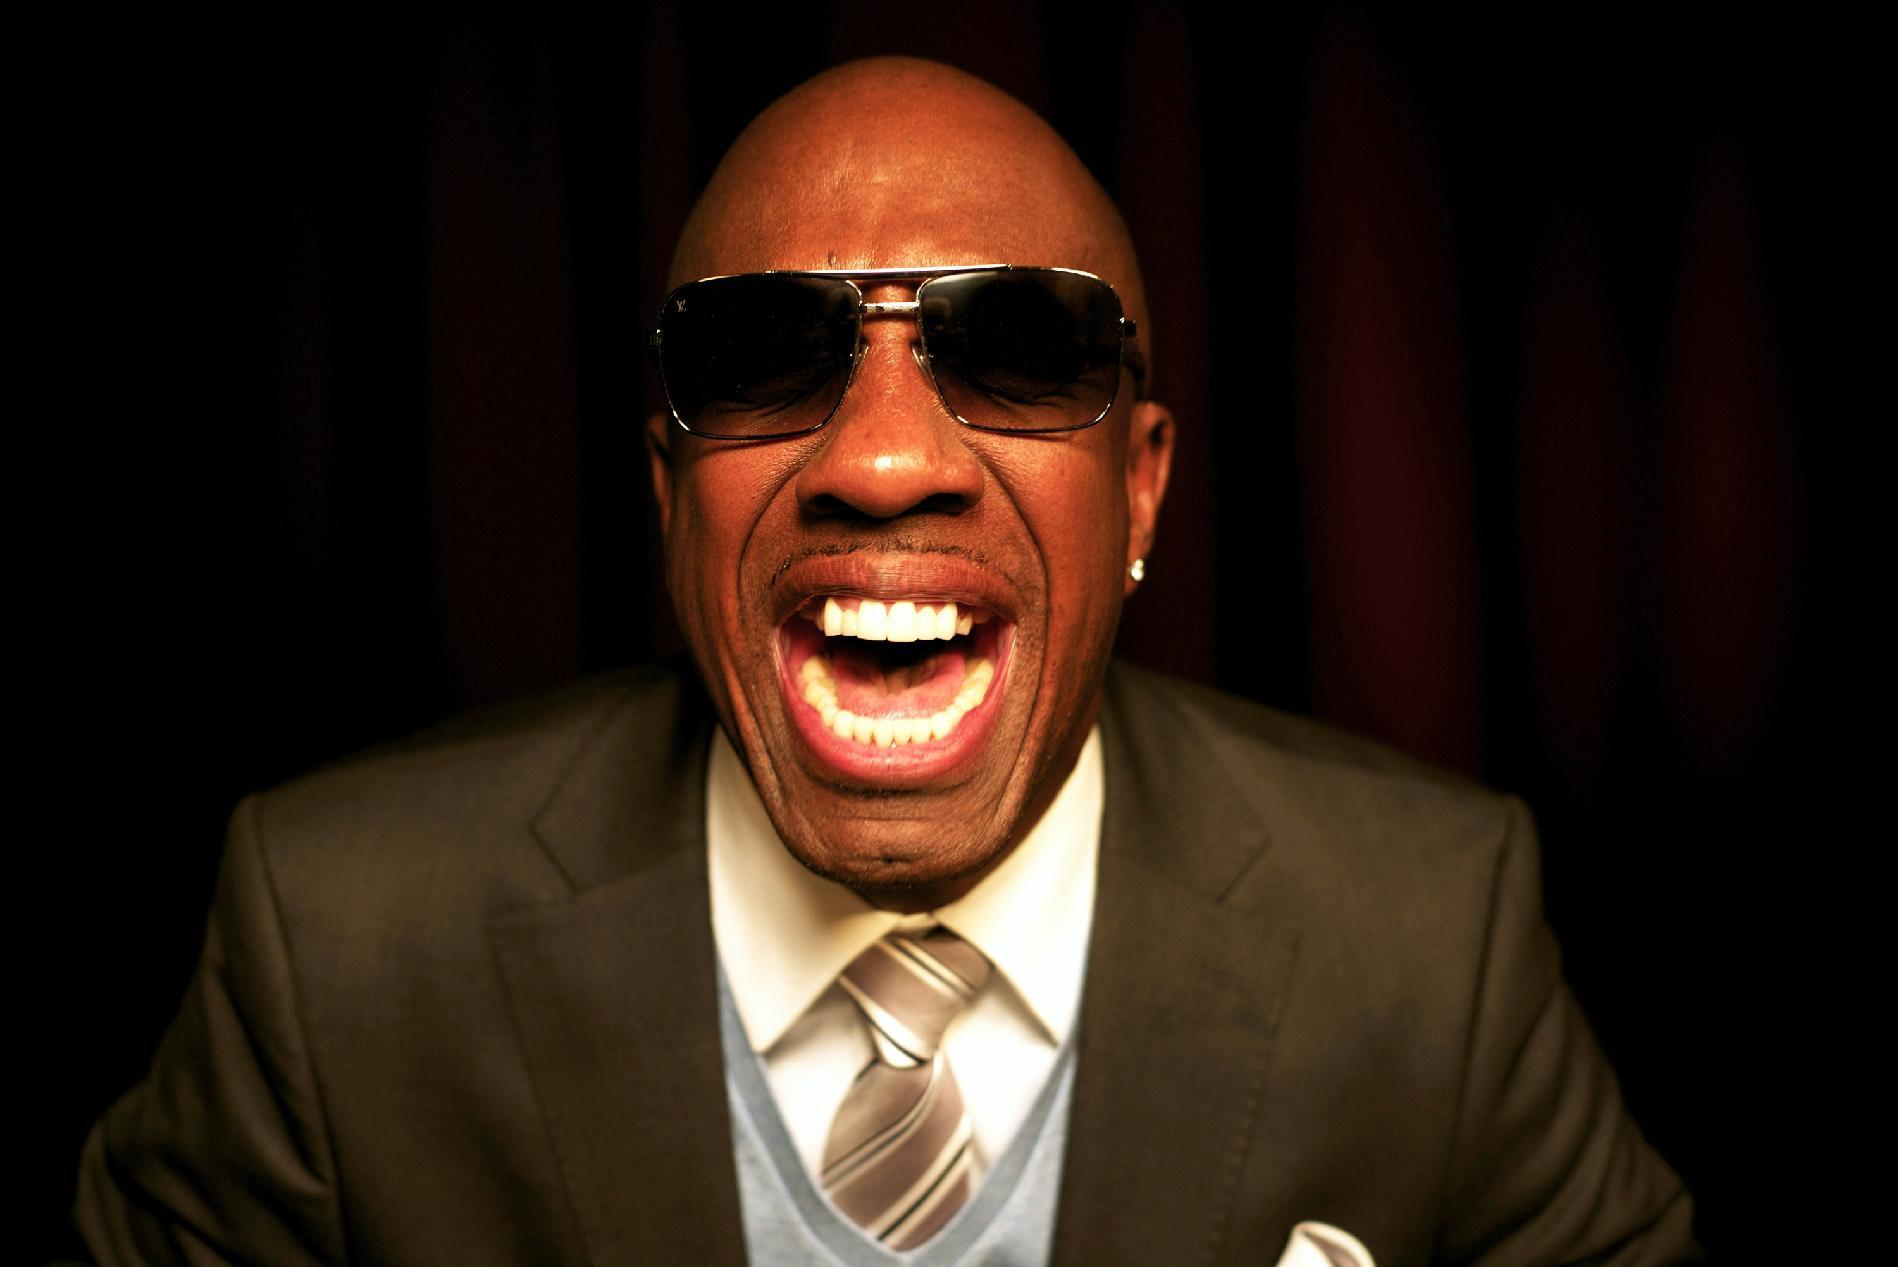 JB Smoove 'psyched' to perform at Garden of Laughs benefit